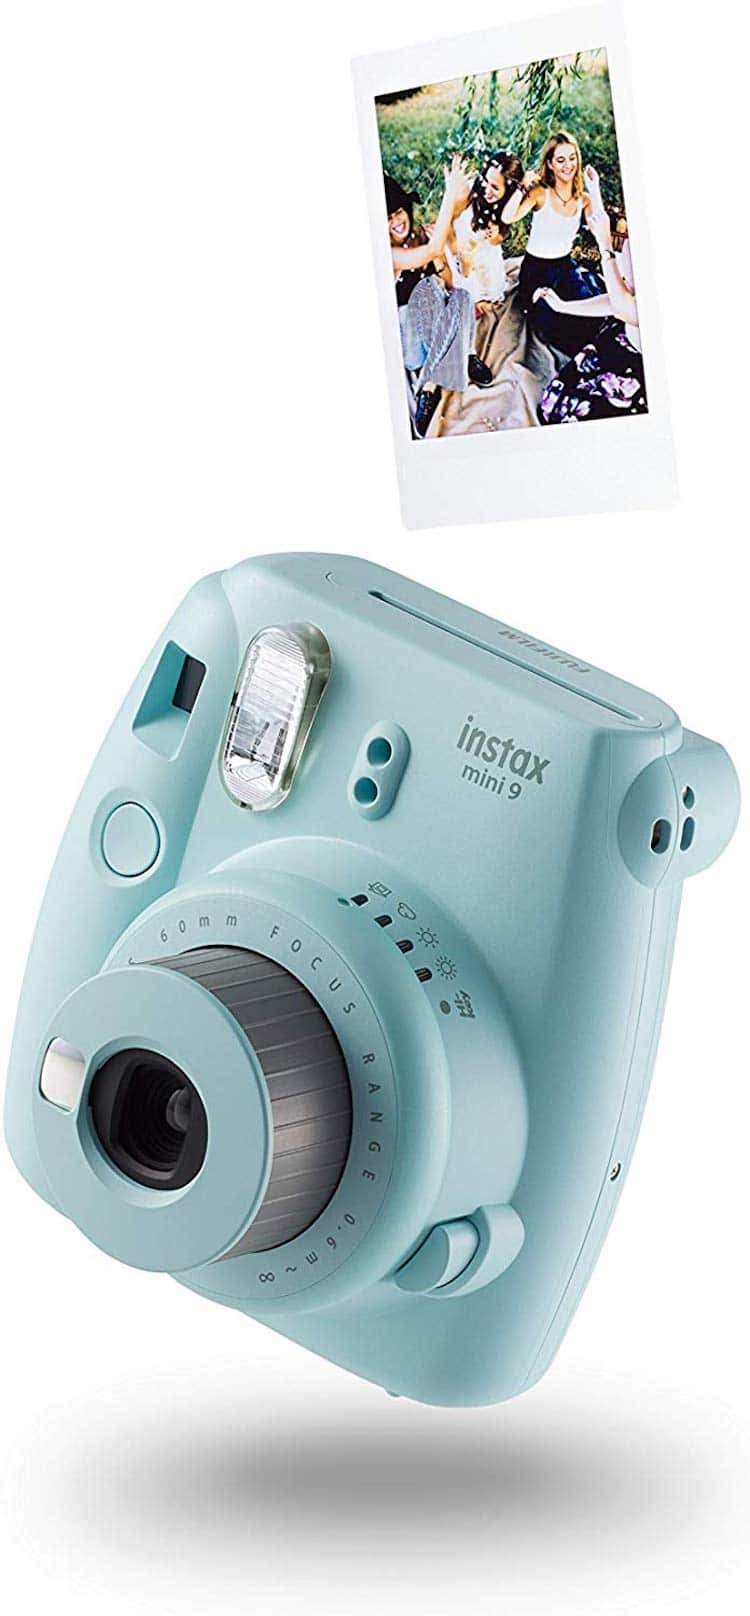 Instax Candle